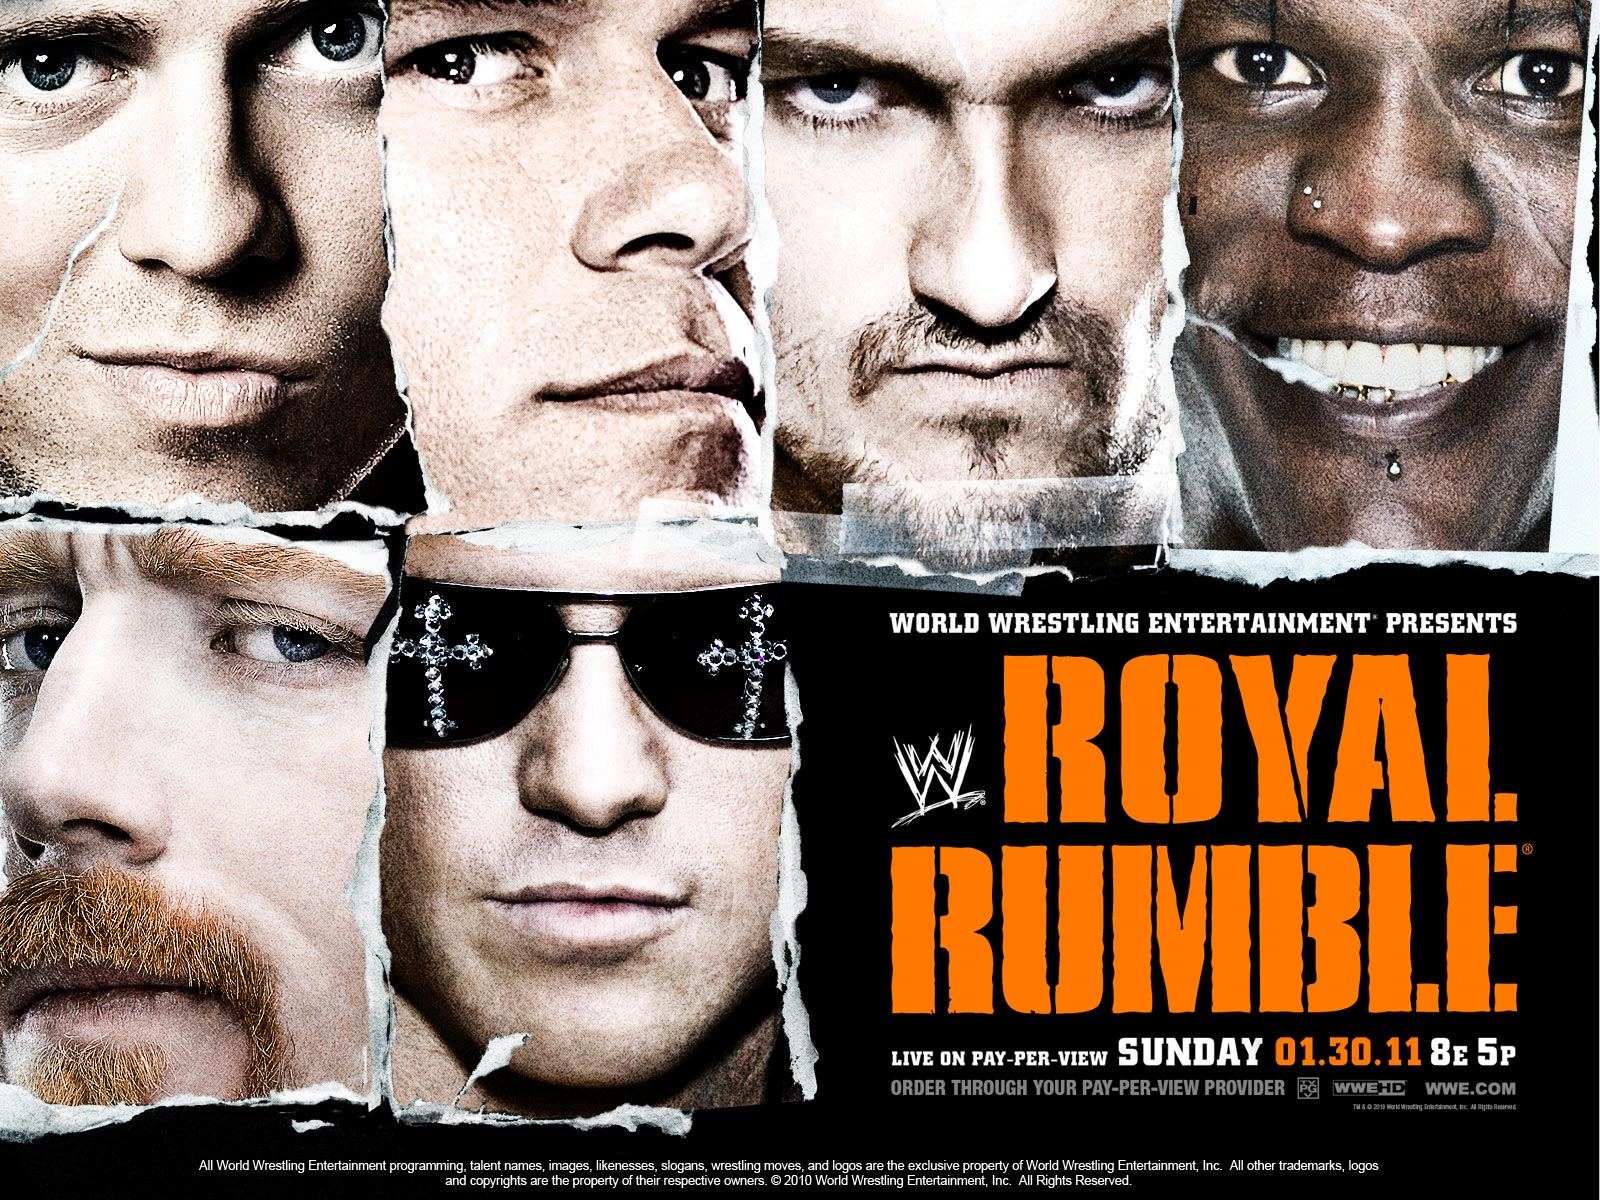 With 40 participants in this year's Rumble match, there are 10 extra men who wouldn't get a chance to shine any other time. Now's the time to put up or shut up.